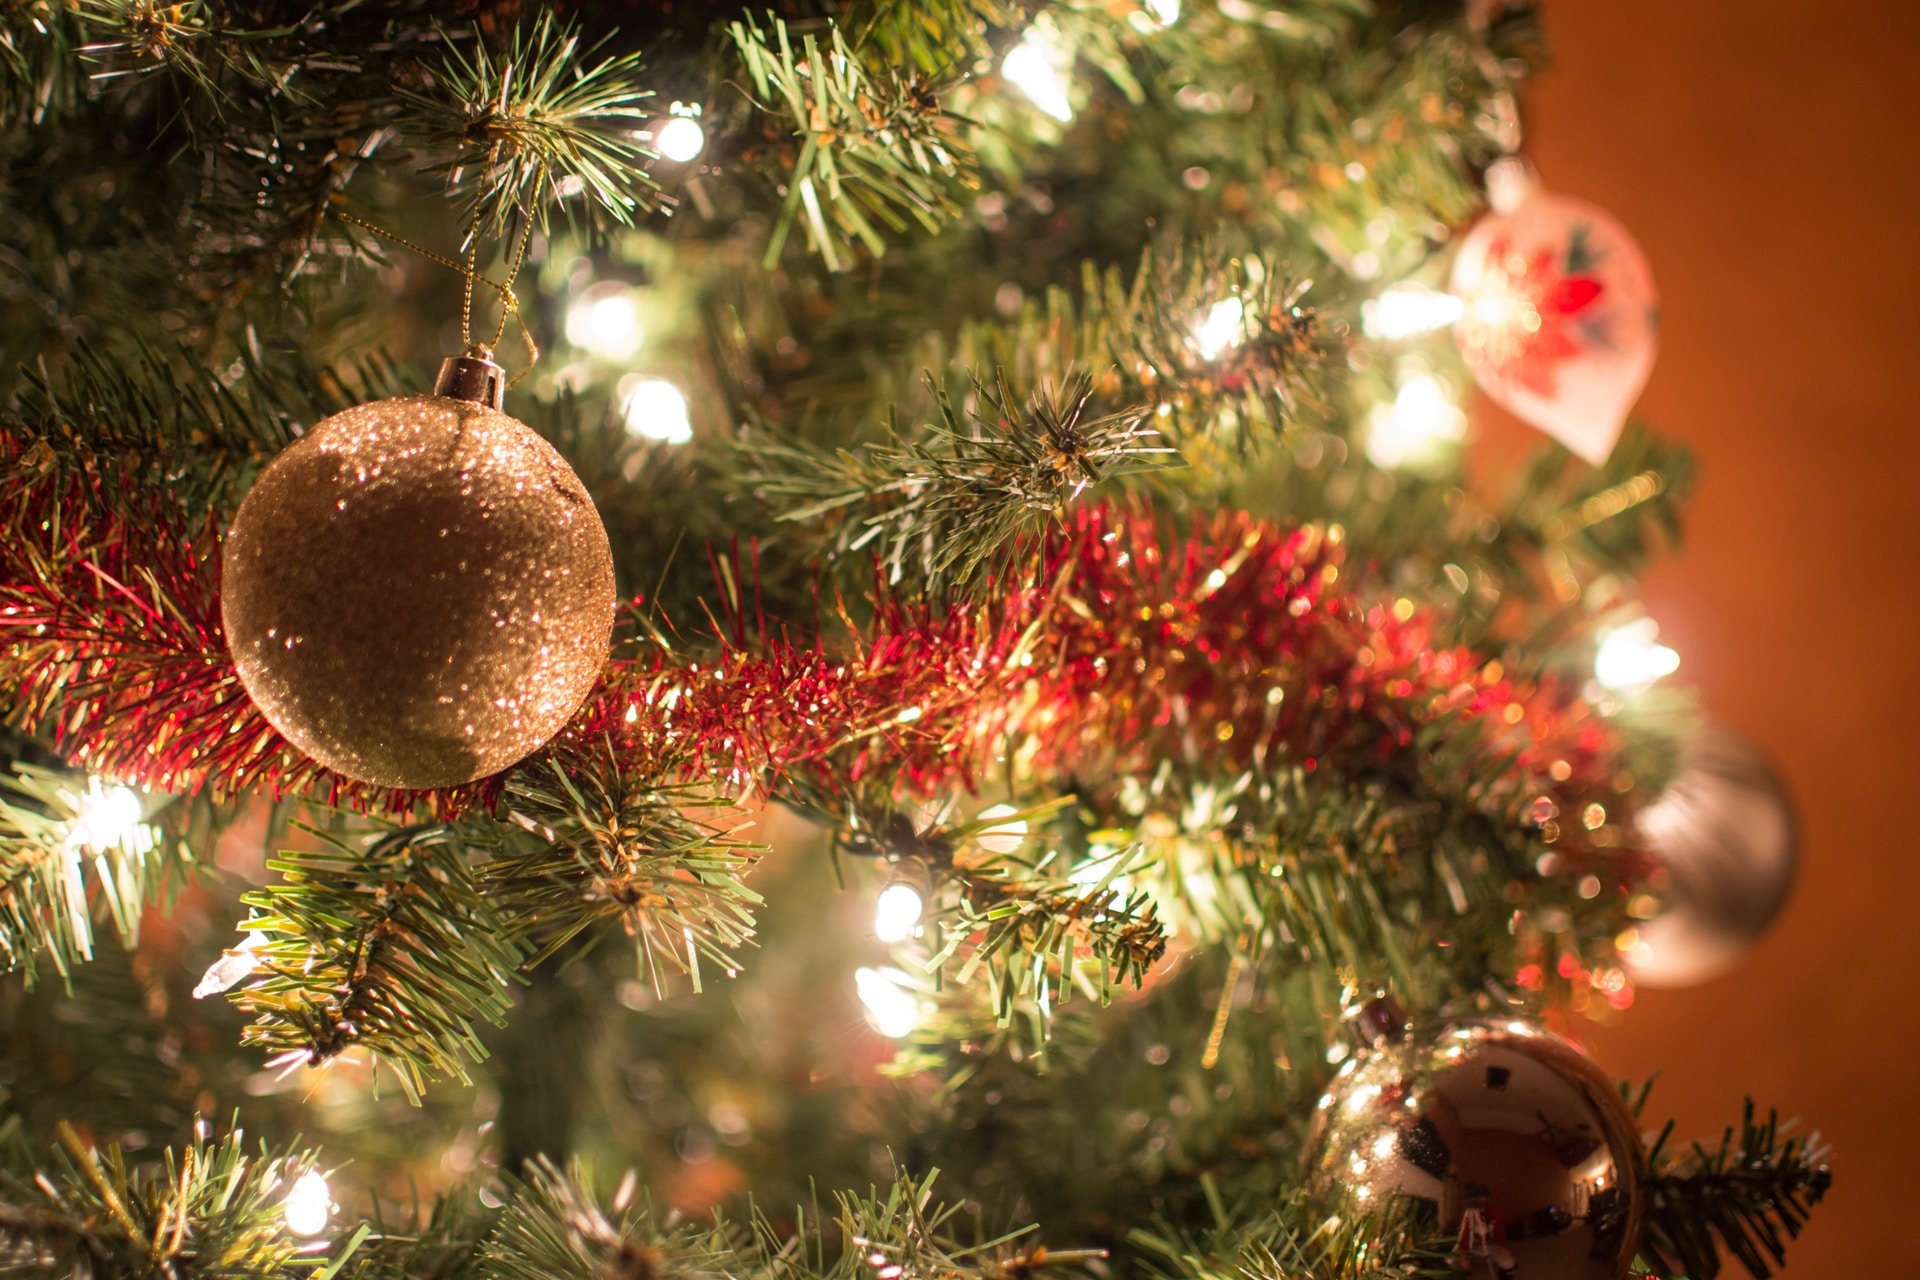 close view of lighted Christmas tree with decors